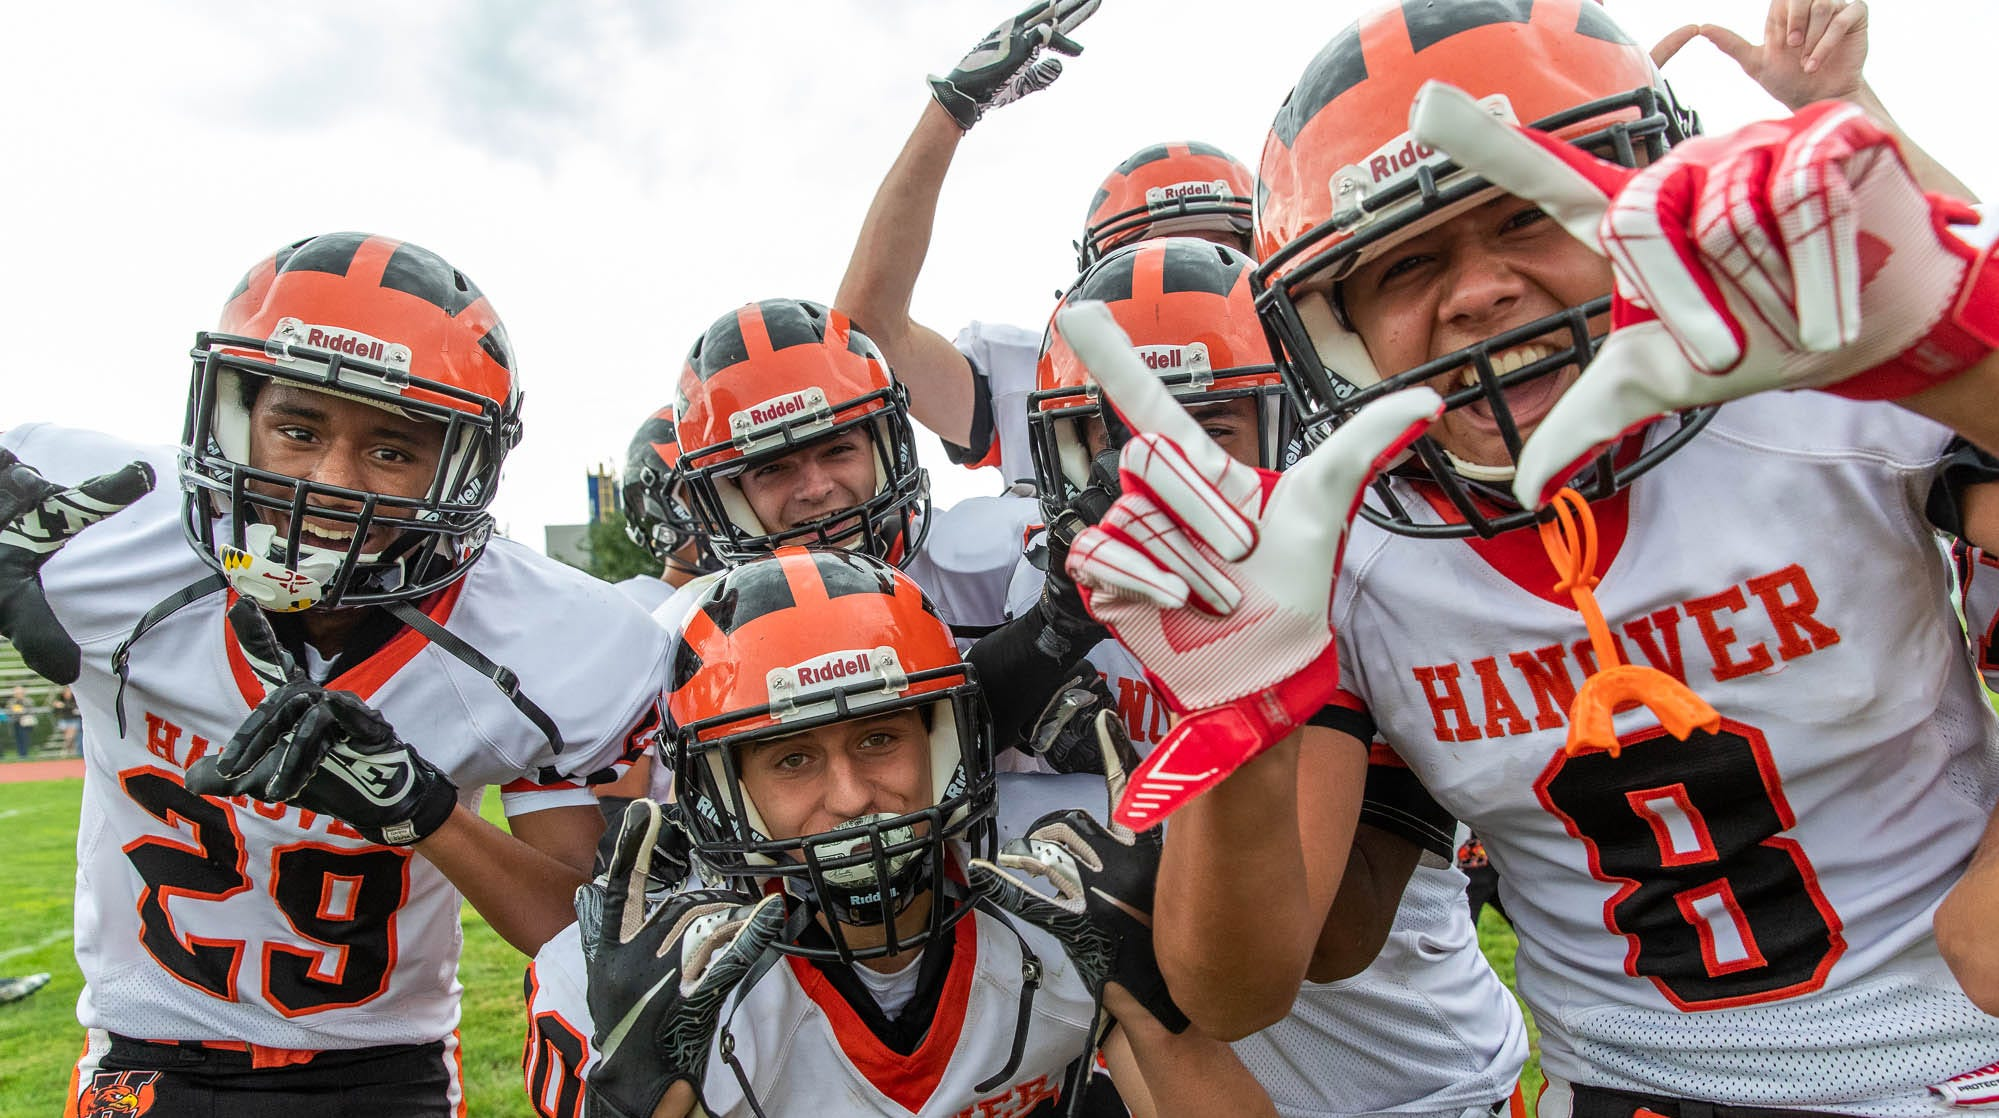 The Hanover Nighthawks celebrate their win against York Tech, Saturday, Sept. 22, 2018, at the York County School of Technology in York Township. The Nighthawks defeated the York Tech Spartans 44-12, giving Hanover their first win of the season.